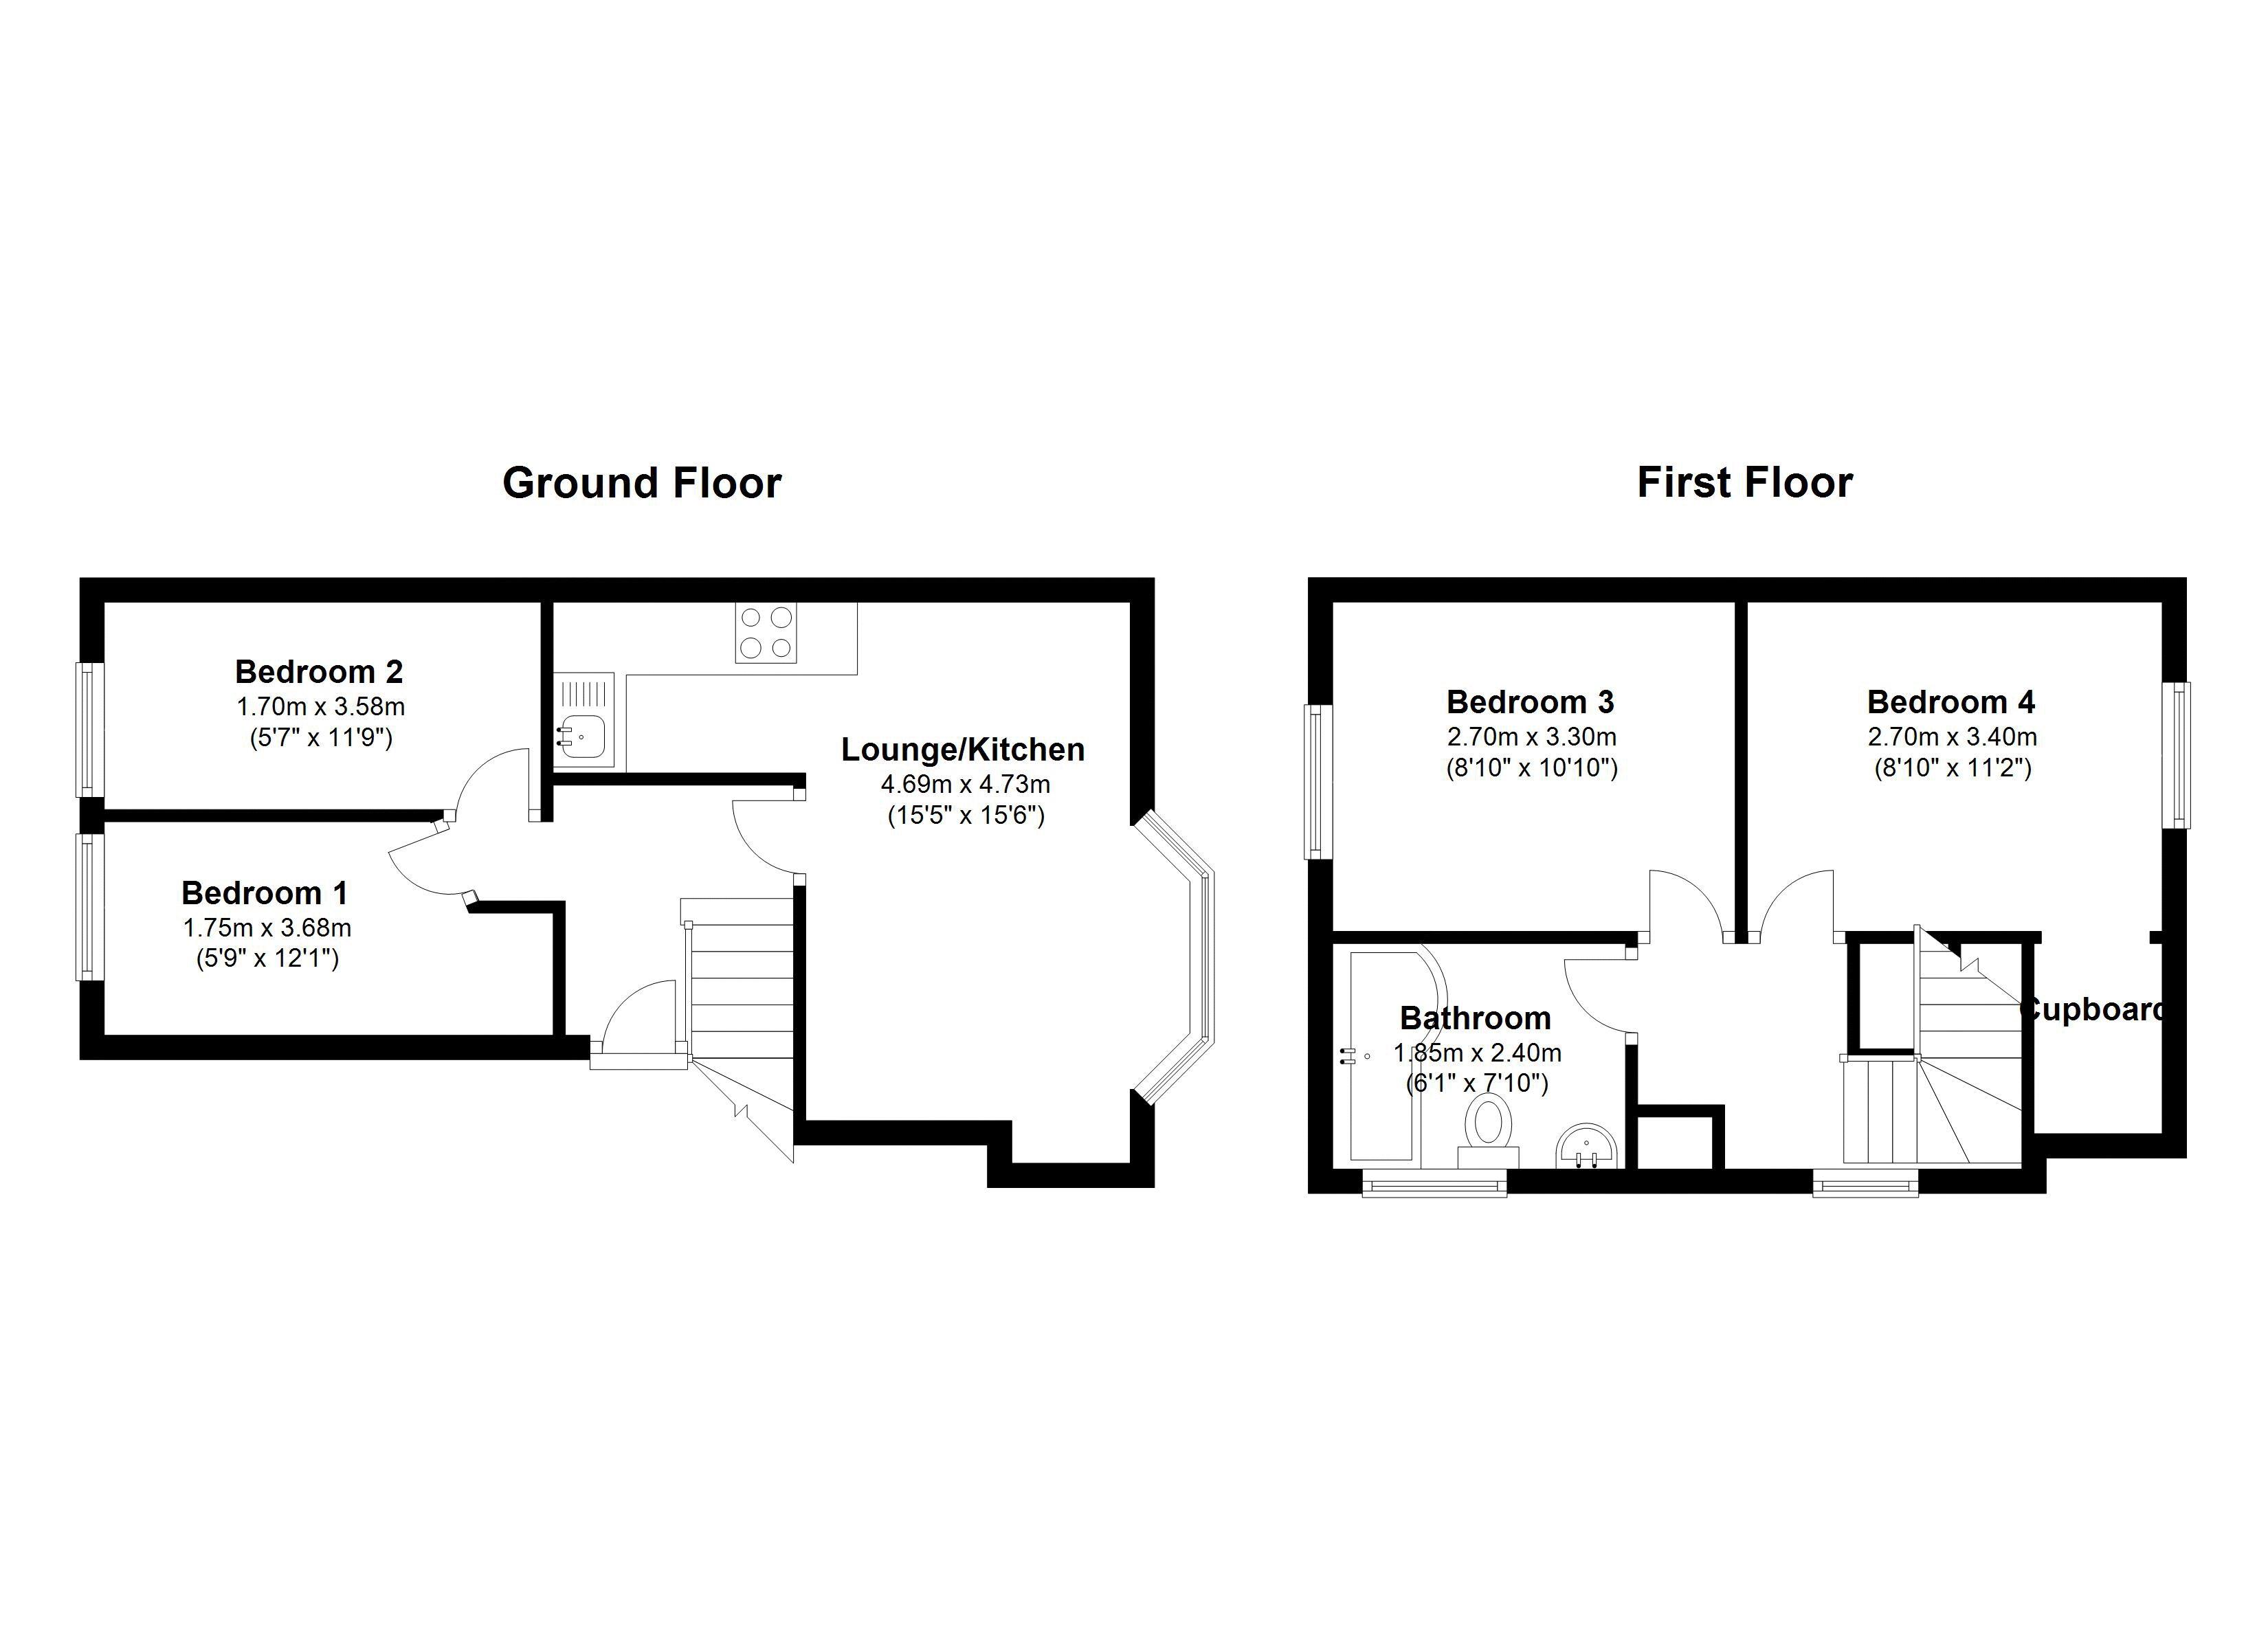 Floor plans for Ditchling Road, Brighton property for sale in London Road, Brighton by Coapt